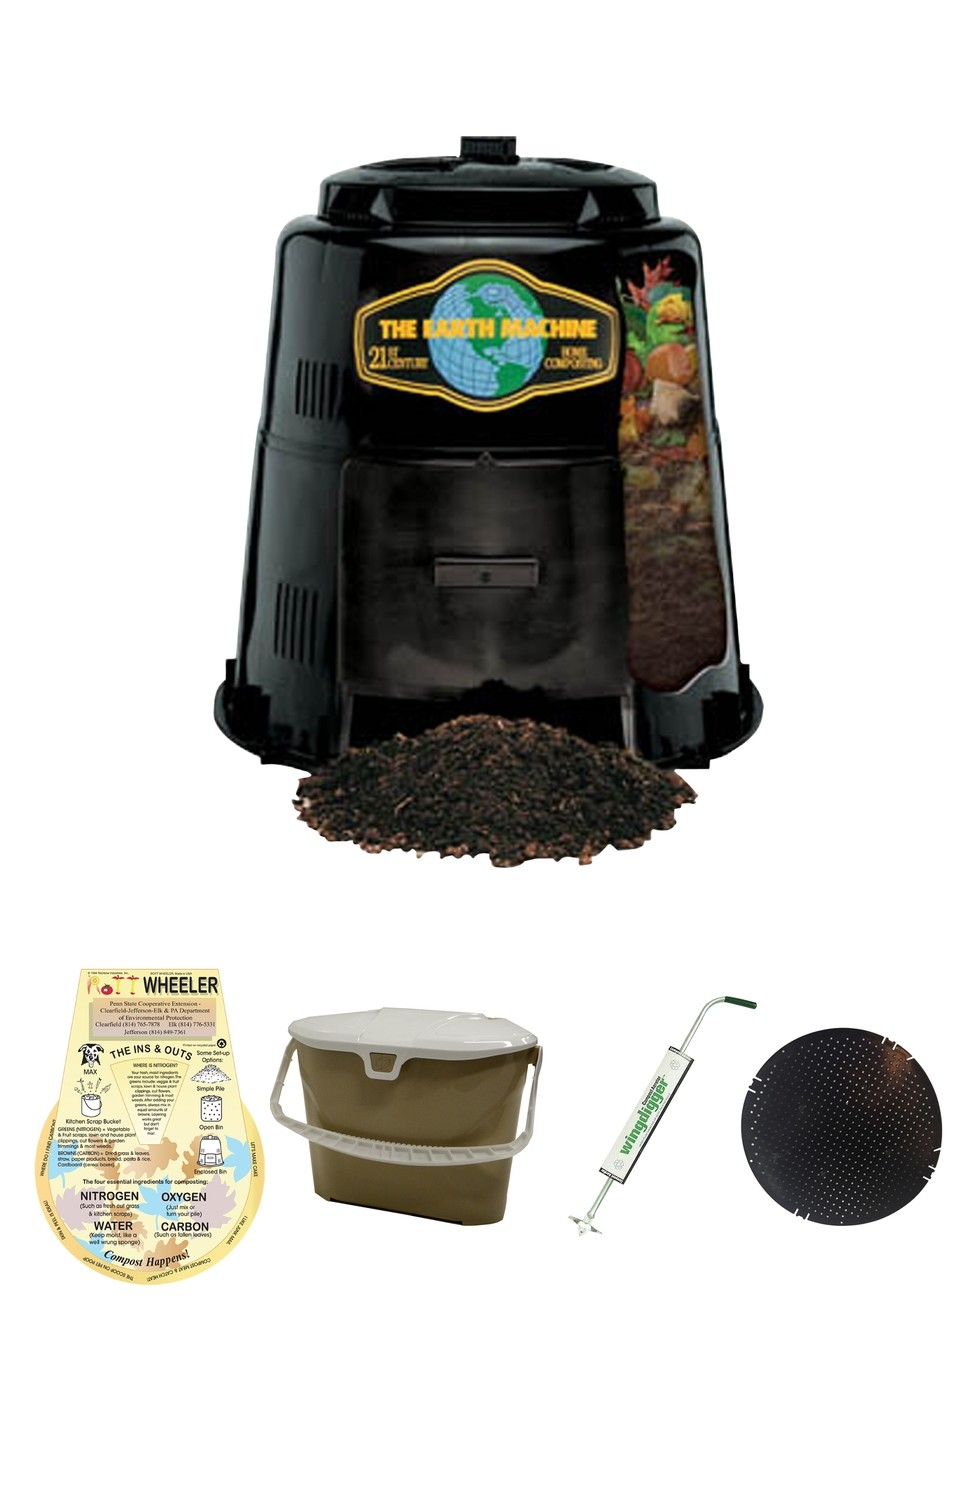 KIT 4: Earth Machine Composter *Includes Rottwheeler, Tan Kitchen Pail, Aerator & Rodent Screen